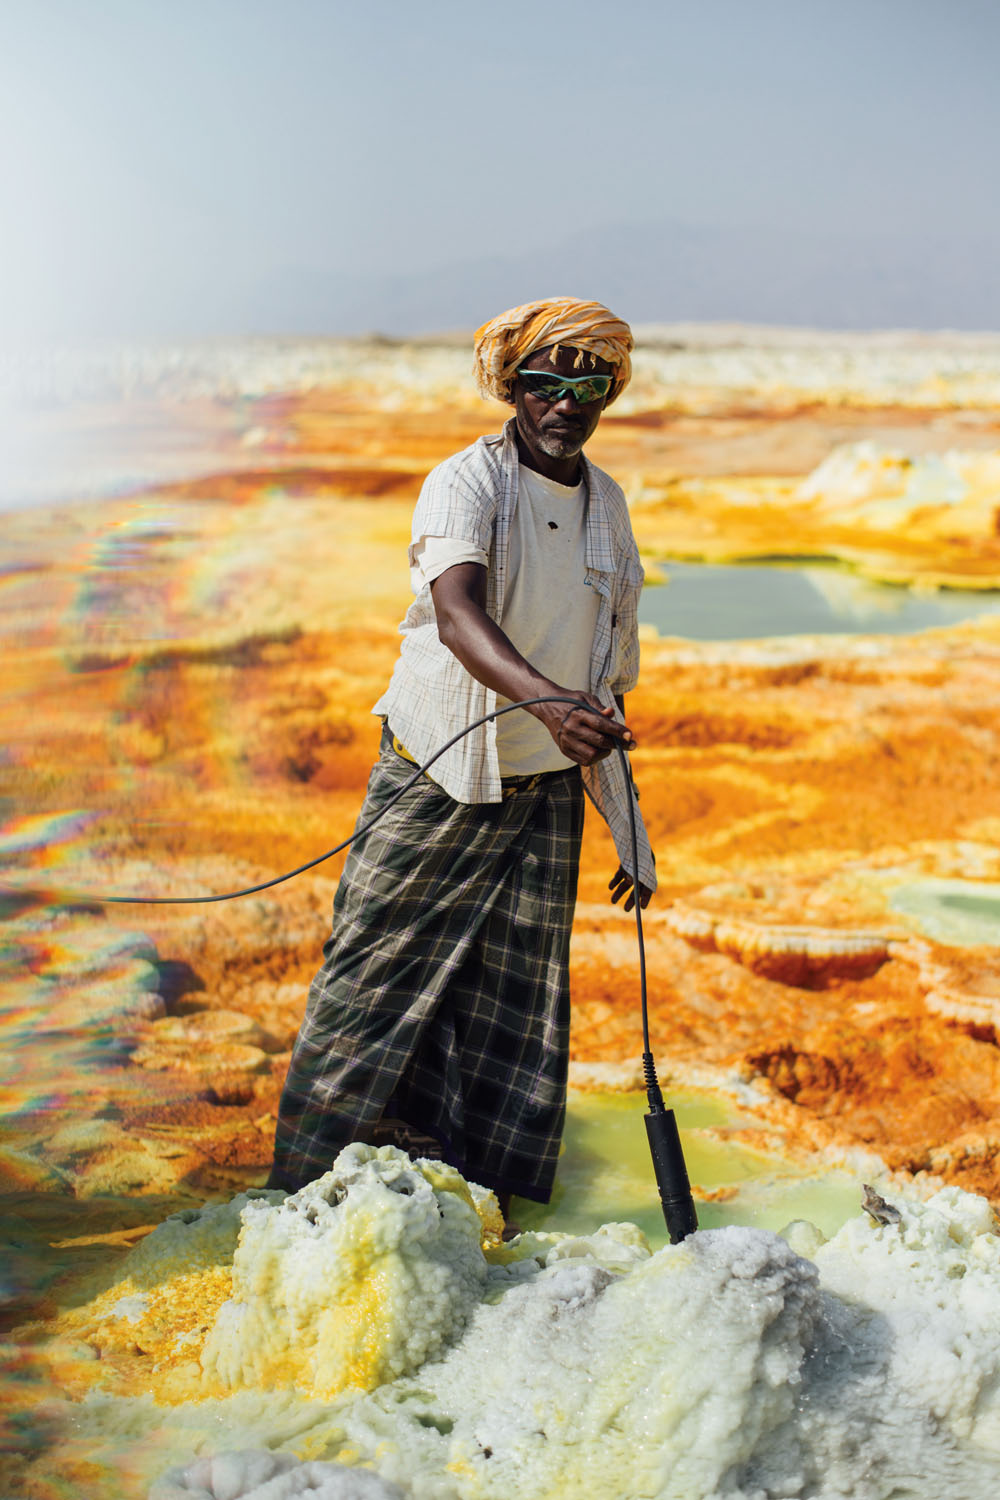 An Ethiopian guide assists with the testing of a sulfur pool. Photograph by Alex Pritz.